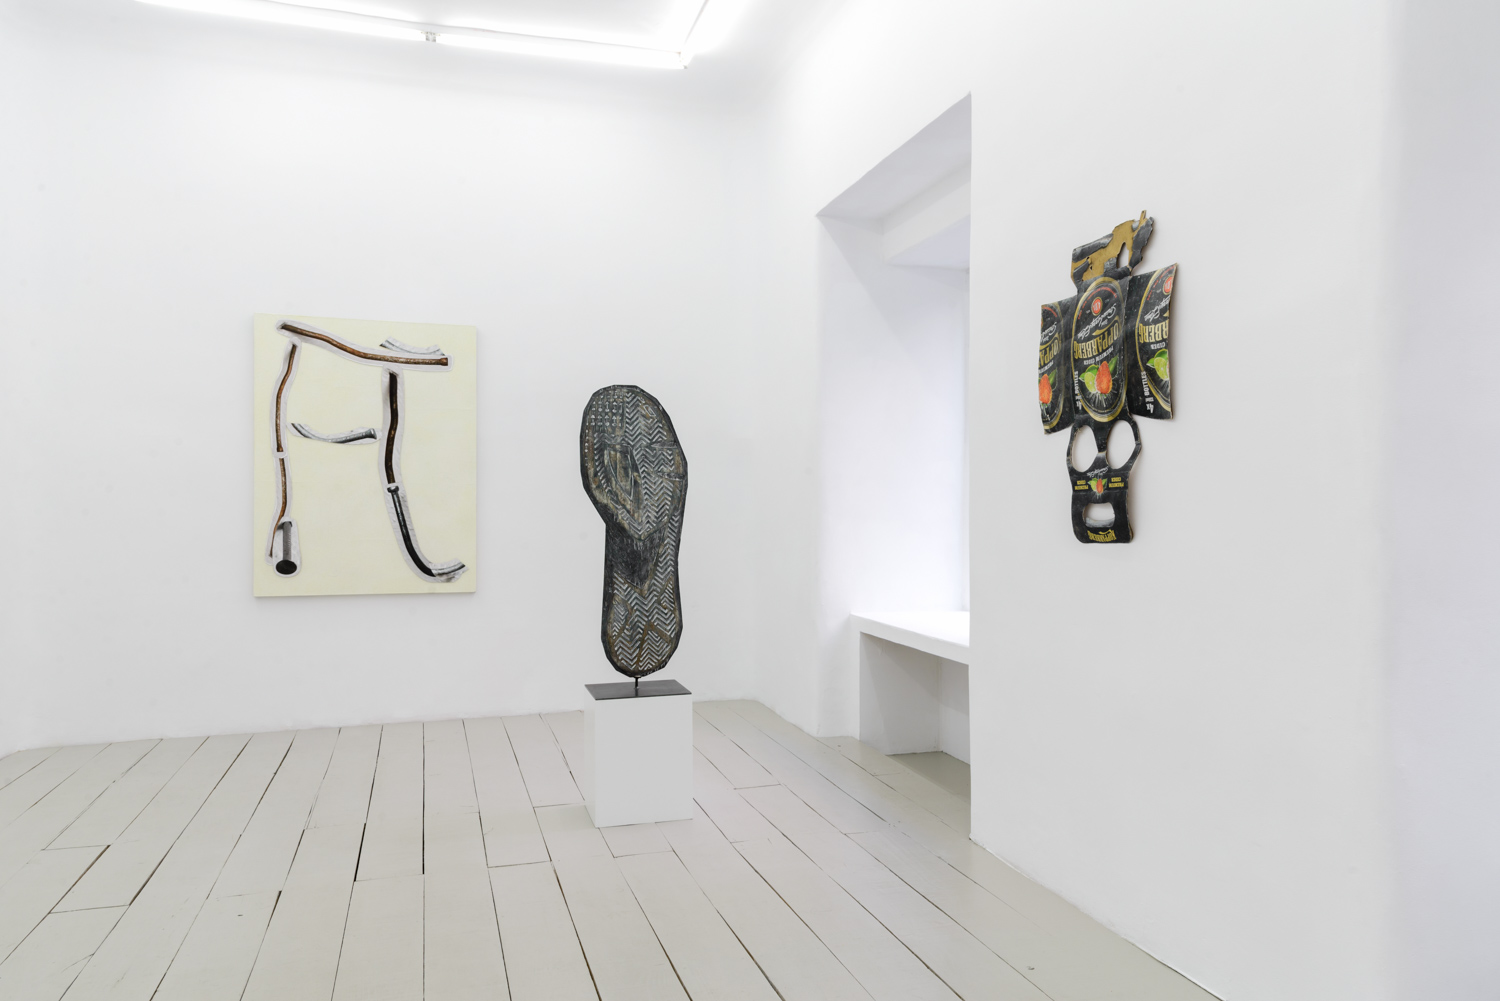 Feitiço. Installation view